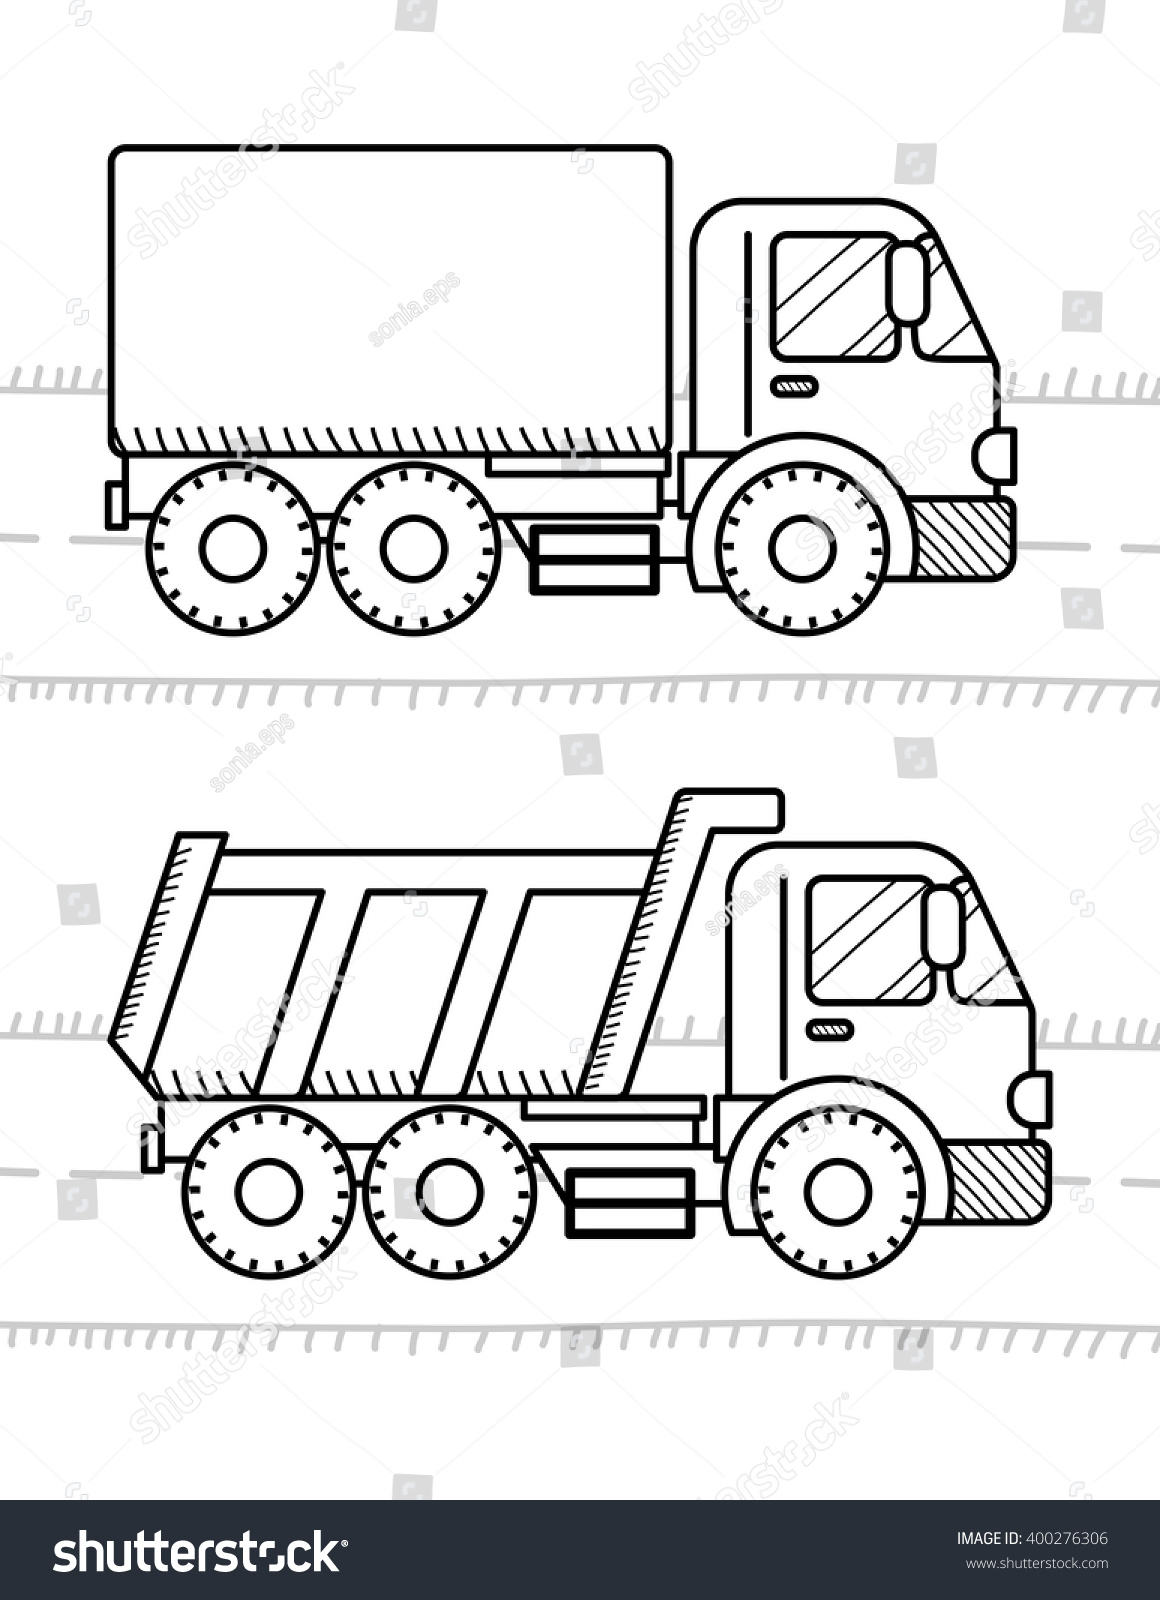 Garbage truck coloring book - Cars Coloring Book For Kids Dump Truck Truck